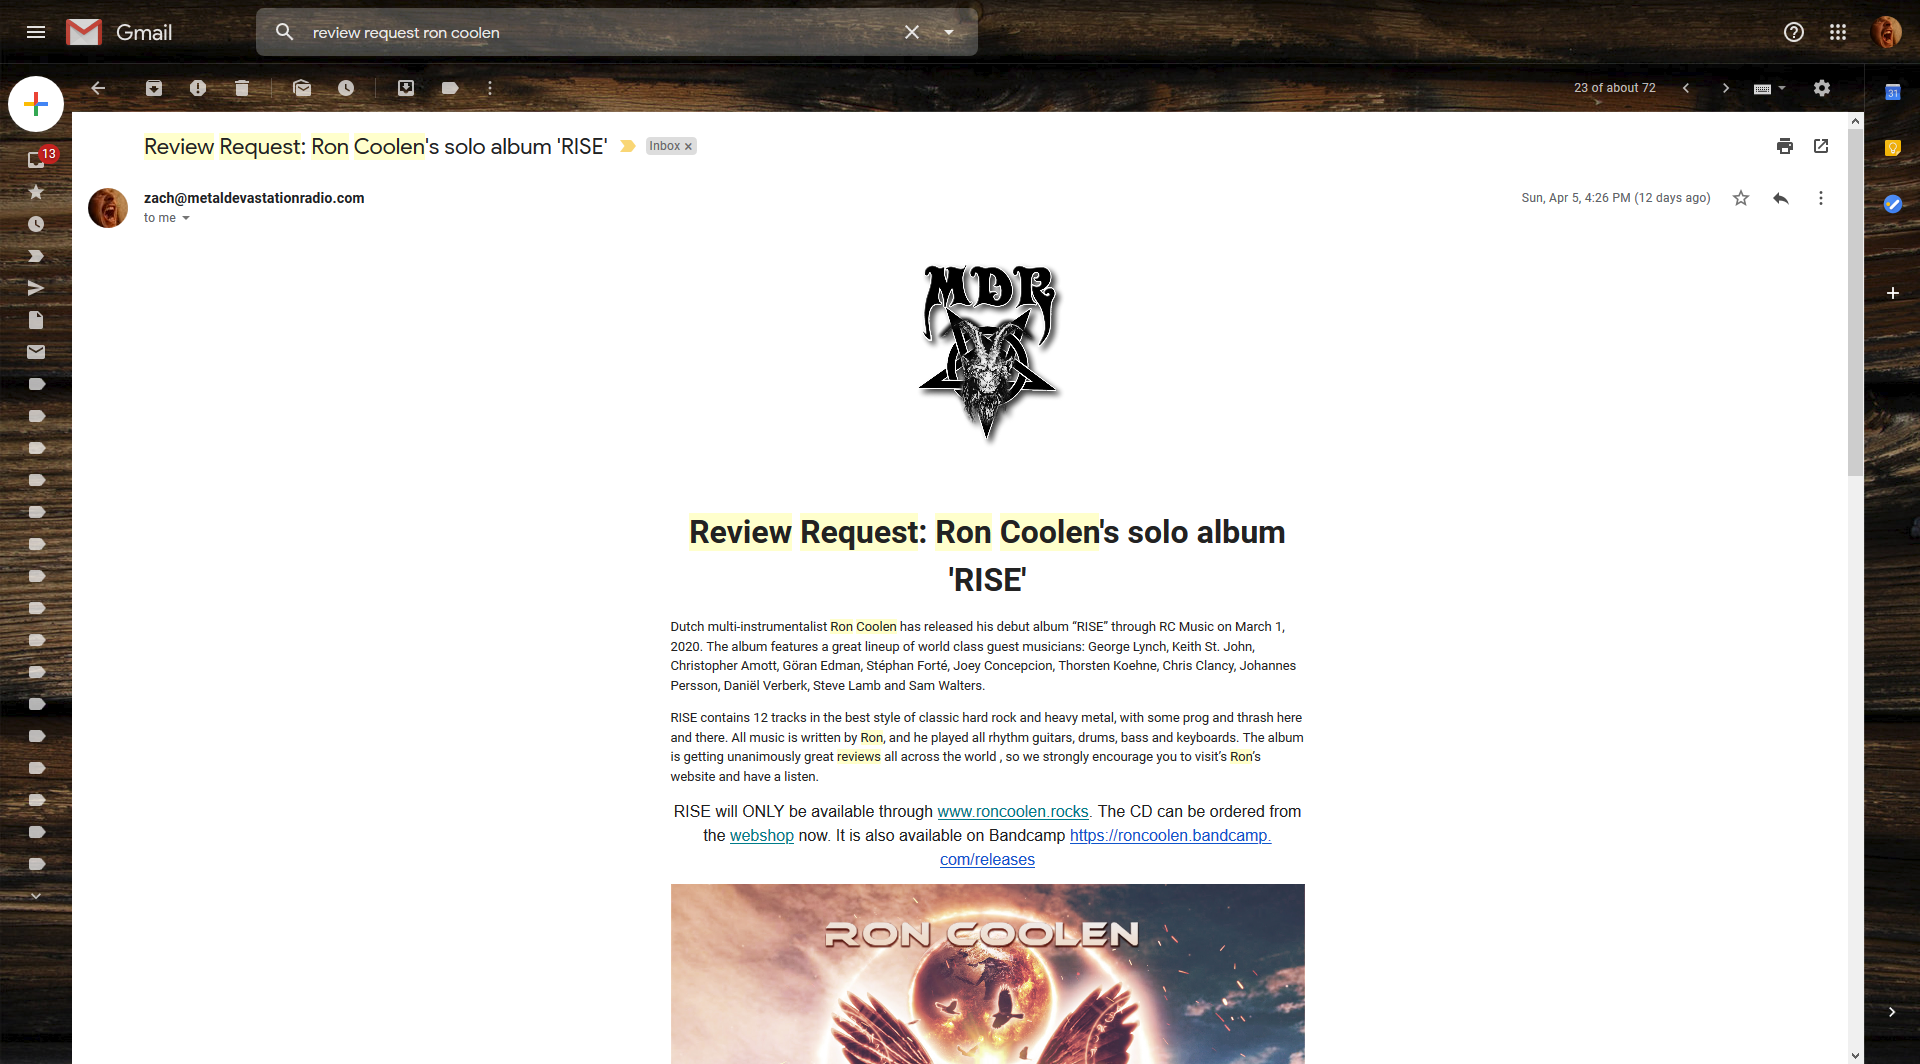 Screenshot_2020-04-17 Review Request Ron Coolen's solo album 'RISE' - helloiamzachary gmail com - Gmail.png